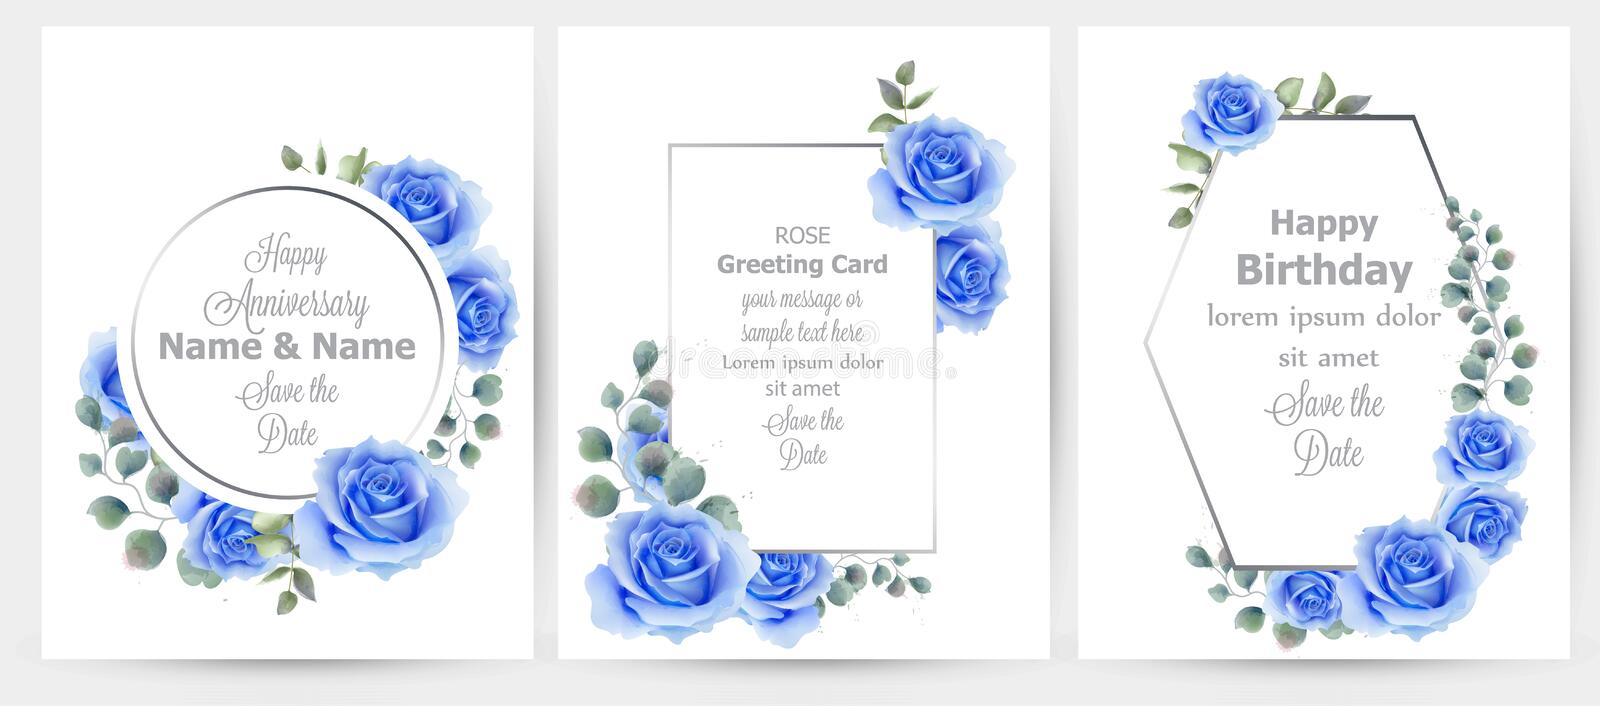 Watercolor blue rose flowers cards set collection Vector. Vintage greeting card, wedding invitation, thank you note royalty free illustration